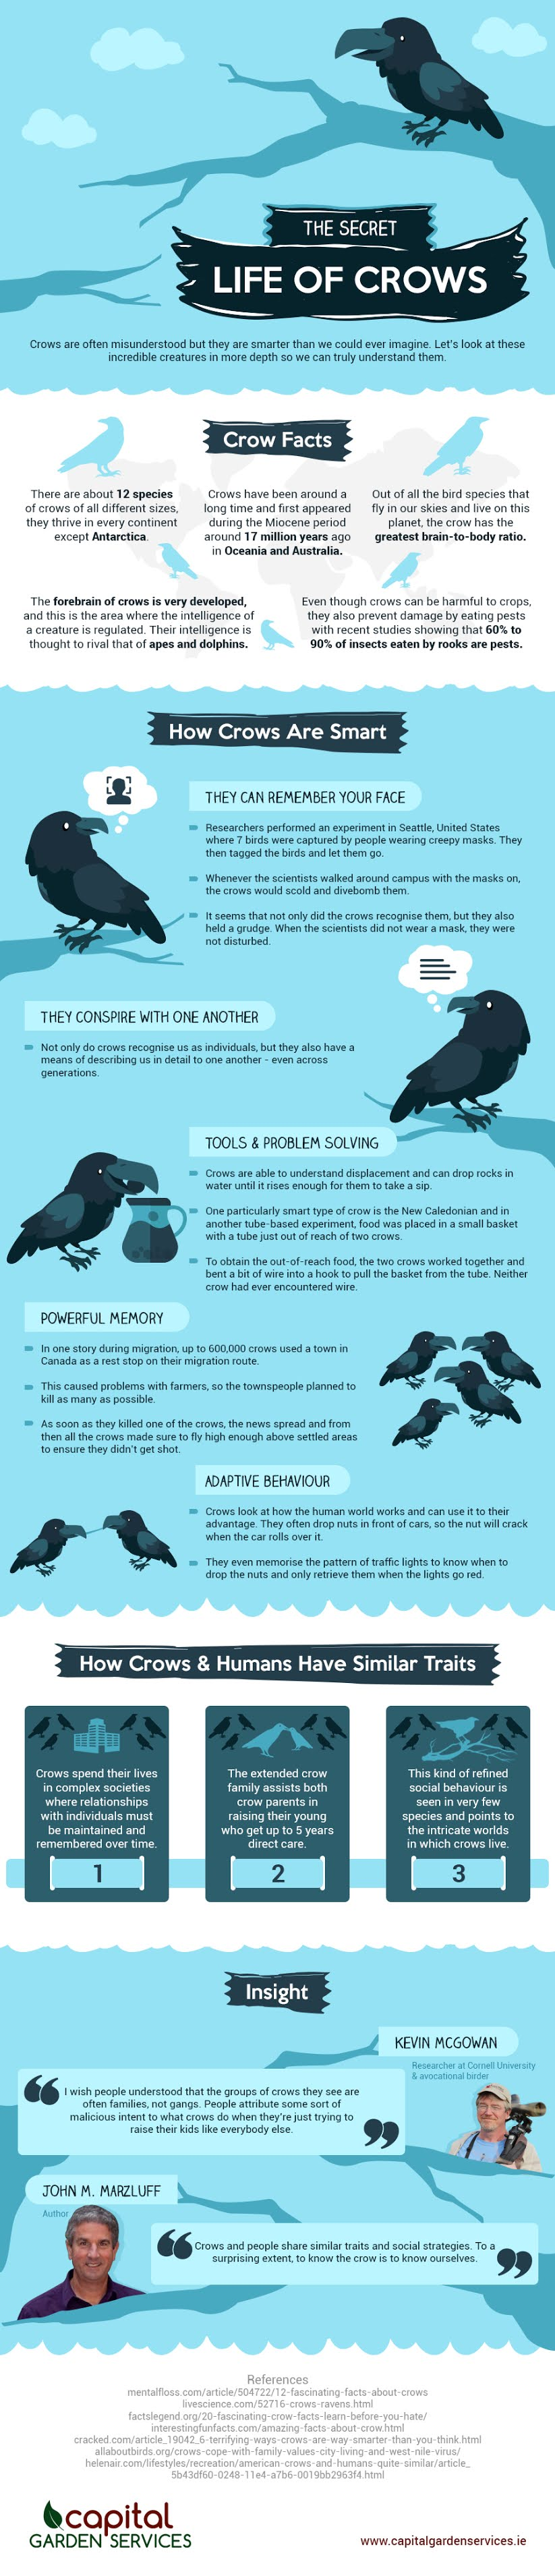 The Secret Life of Crows #infographic